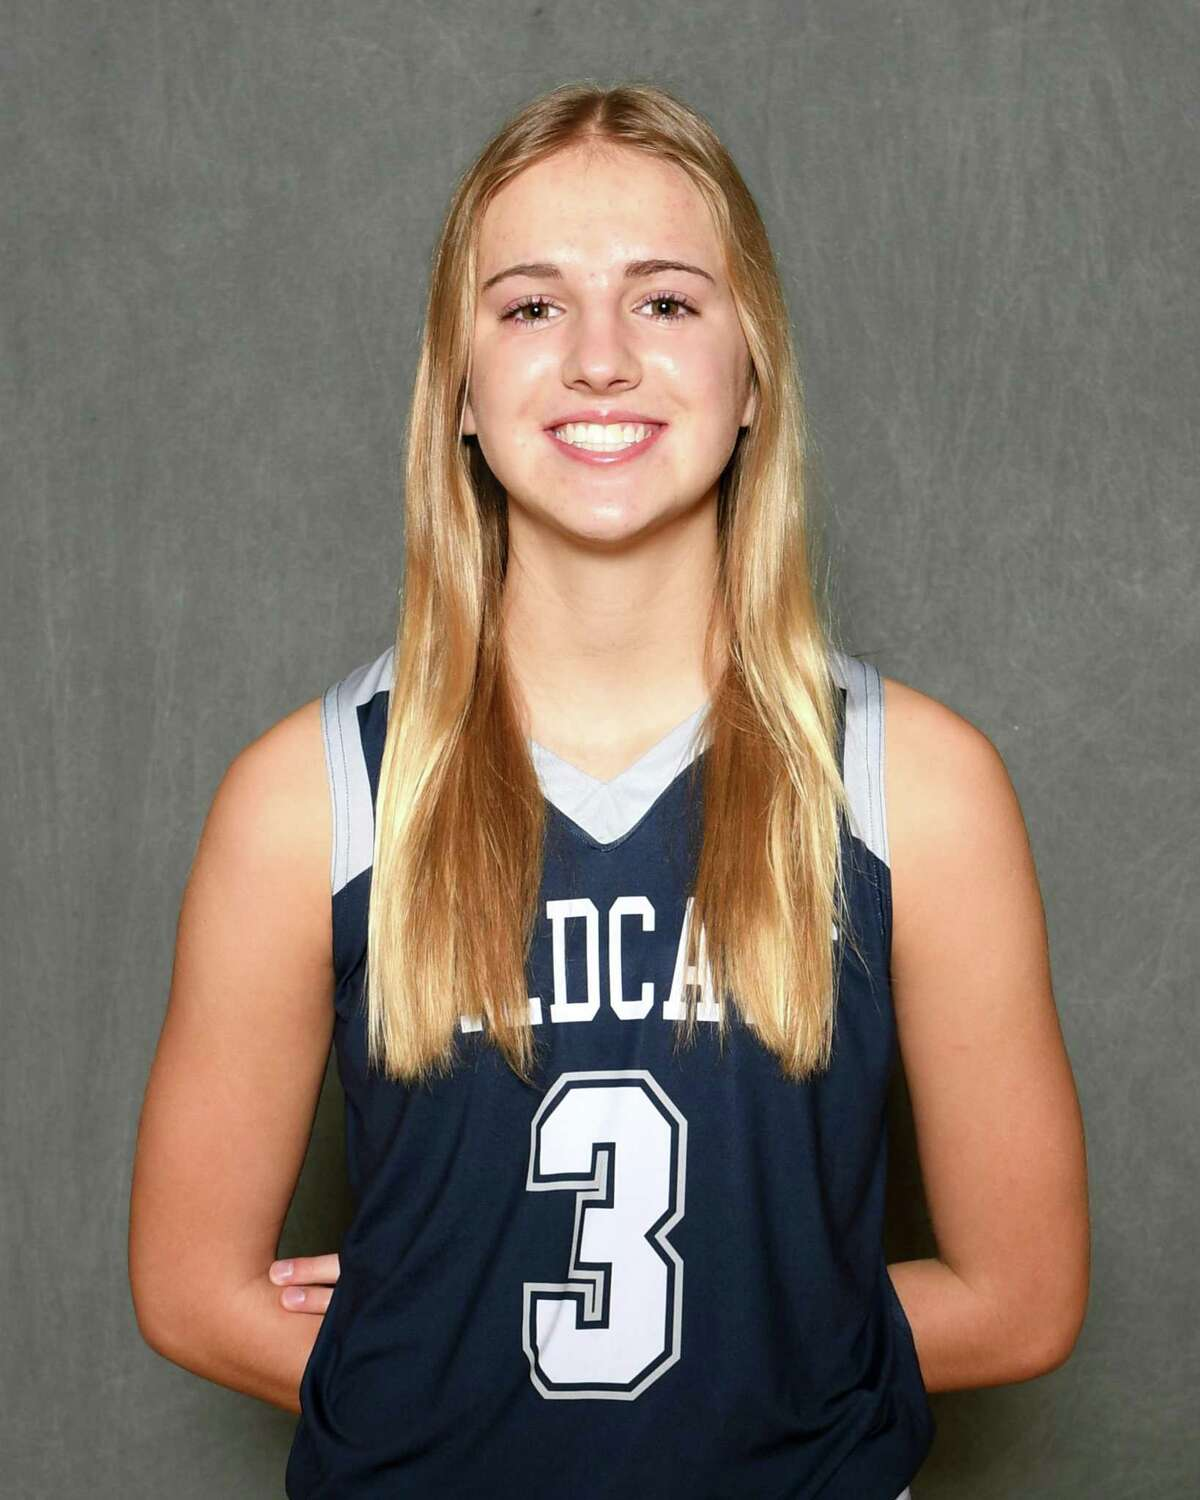 Tomball Memorial sophomore Katelyn Kabrich was named 2020-2021 District 15-6A Offensive Player of the Year.